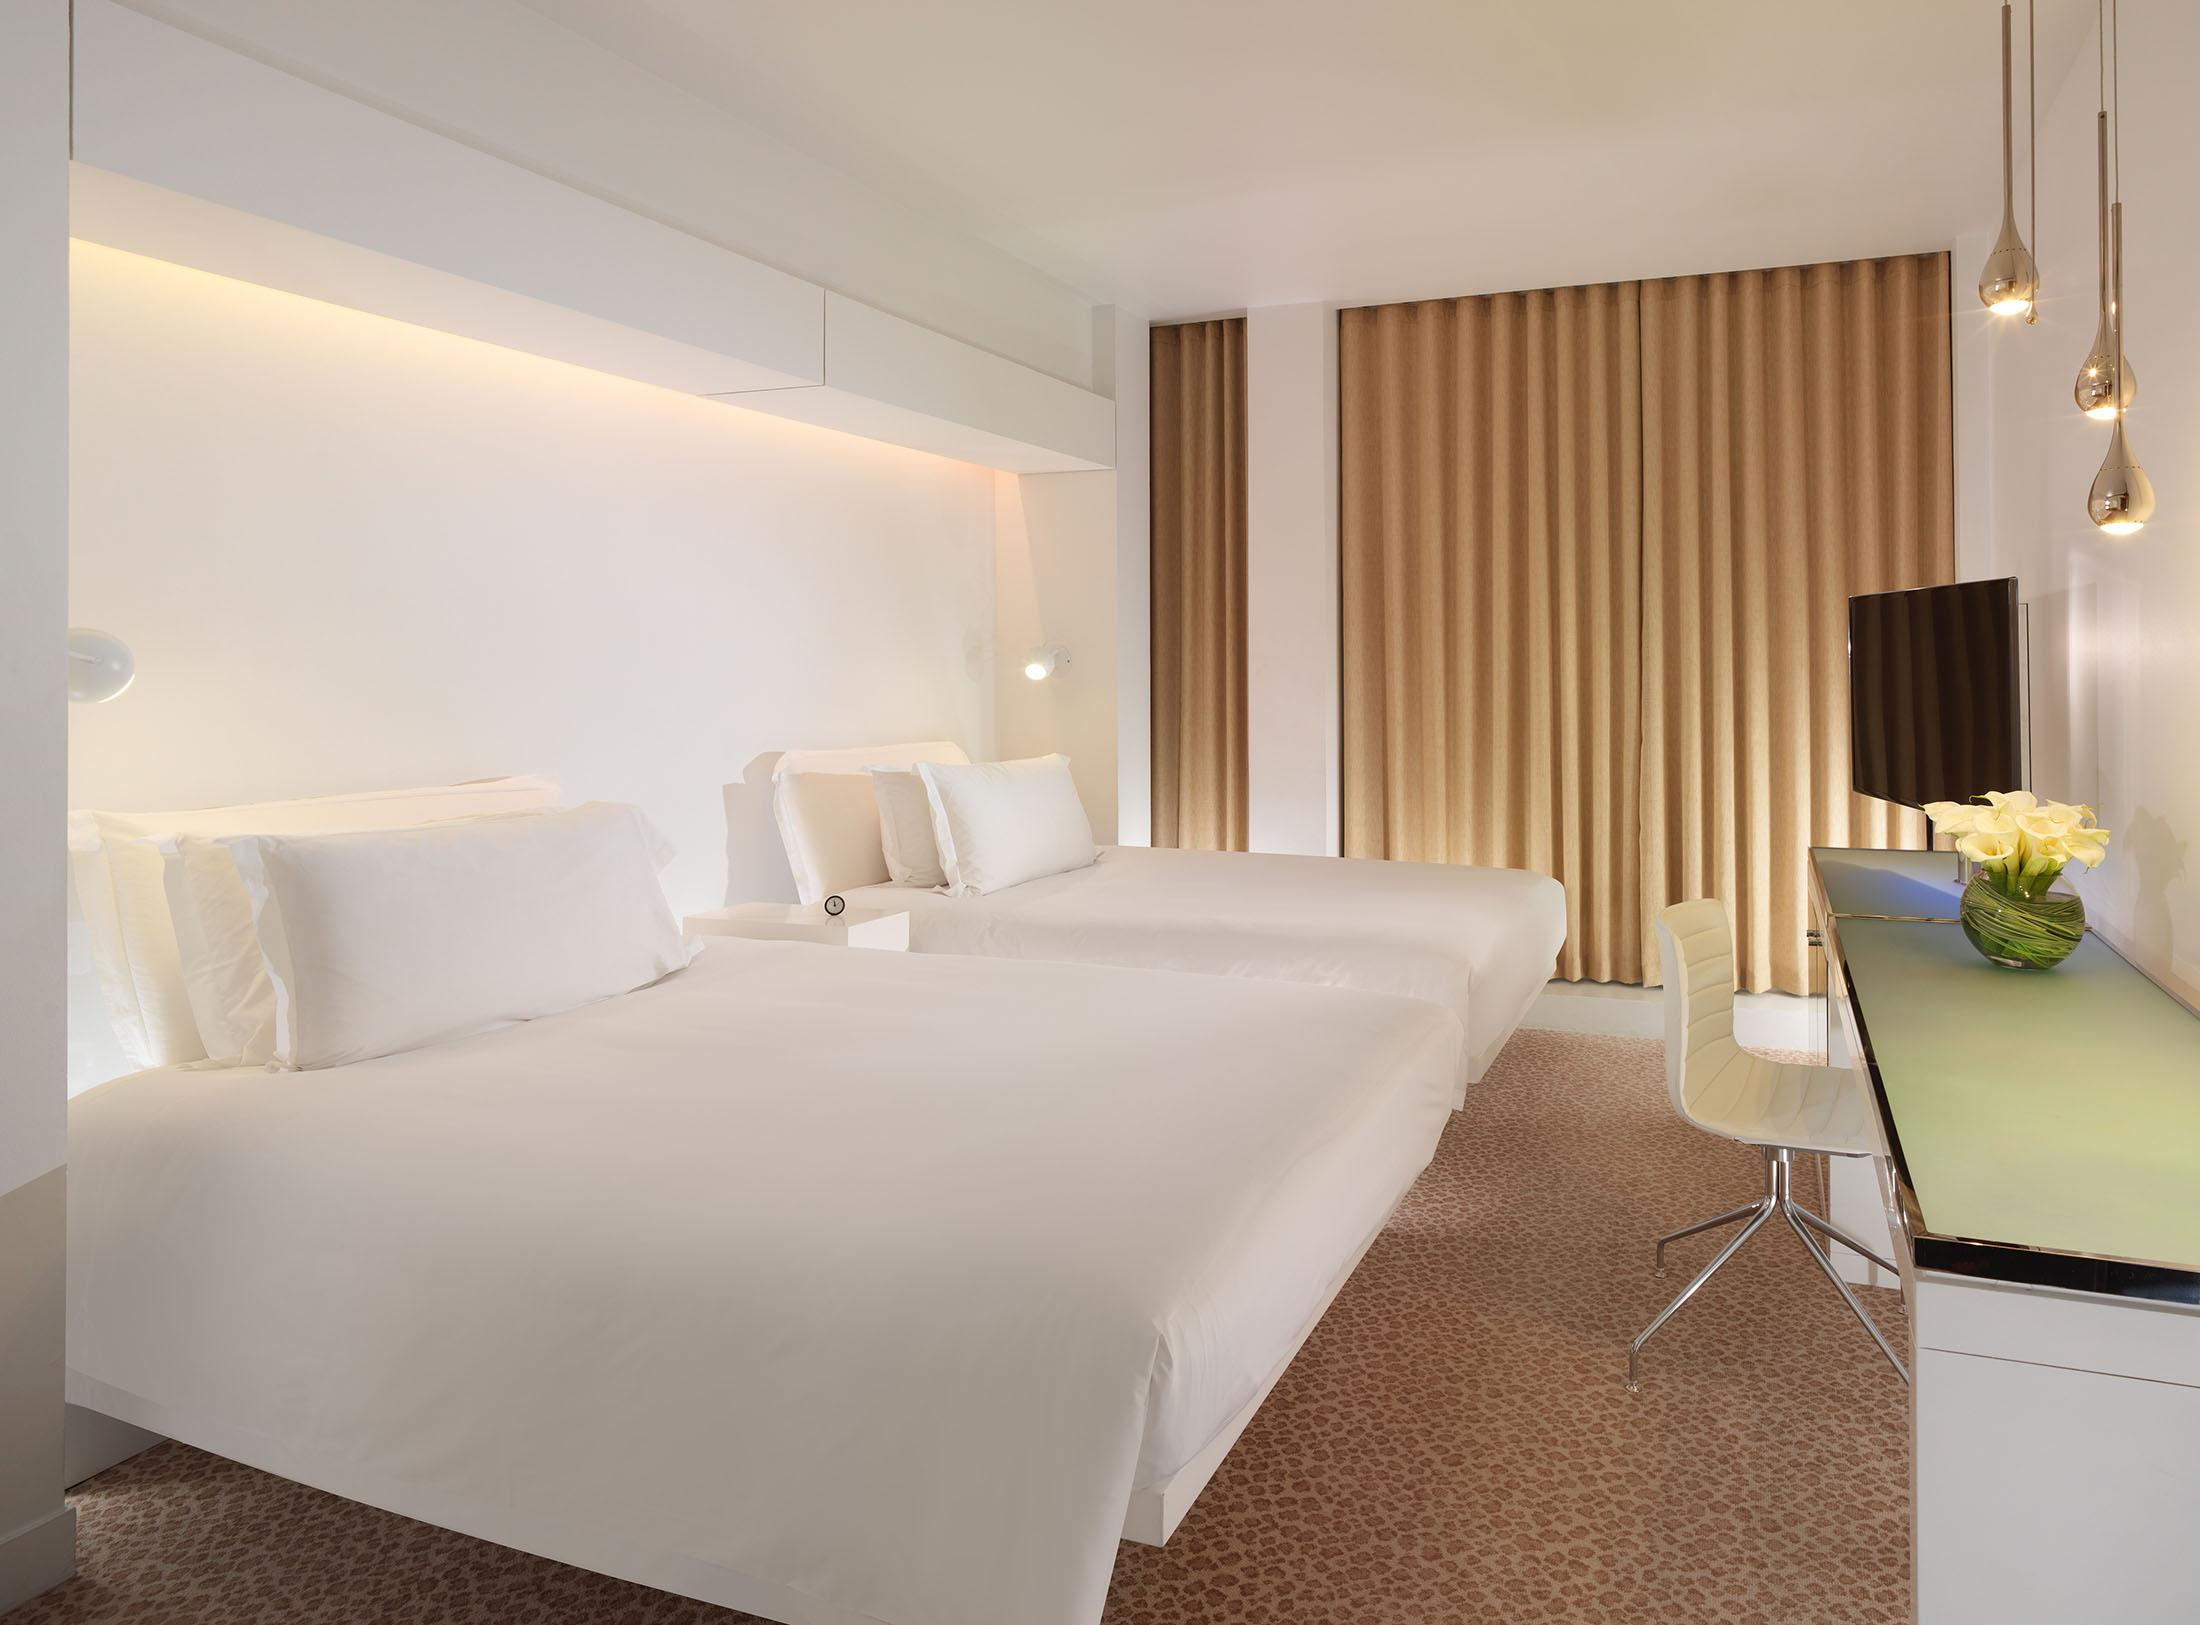 hotel bedroom with two beds all in white